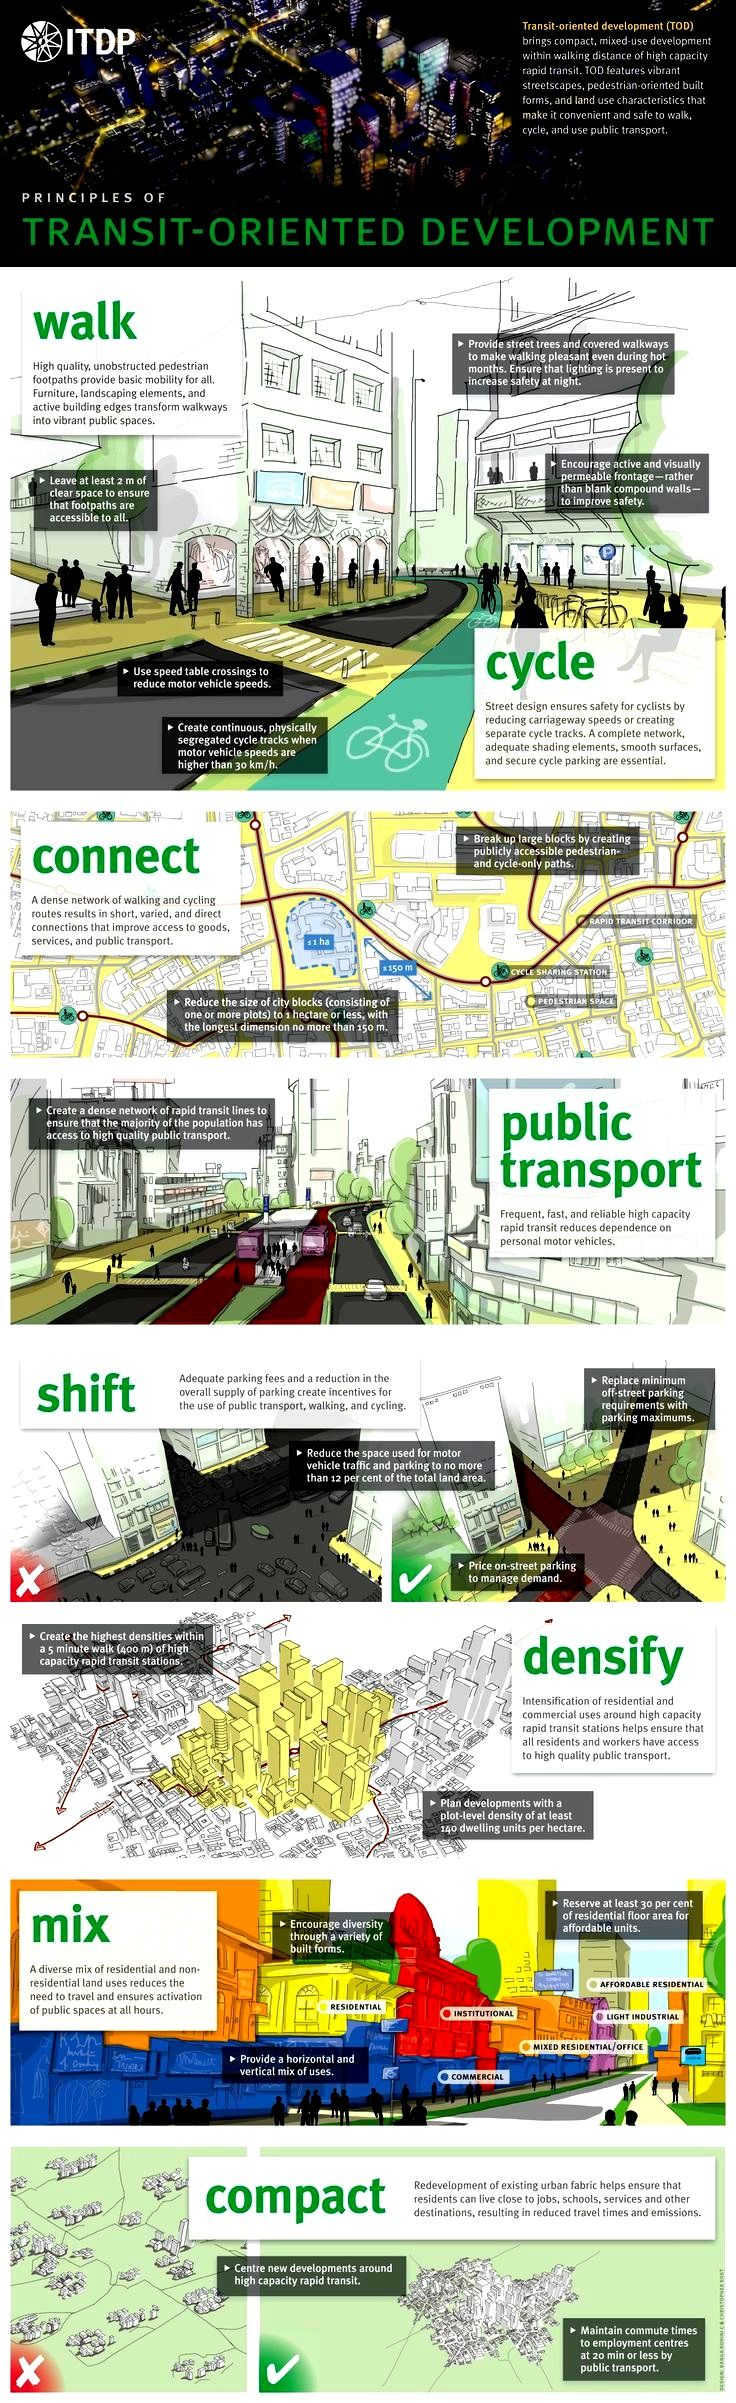 25 best ideas about sustainable transport on pinterest - Sustainable urban planning and design ...